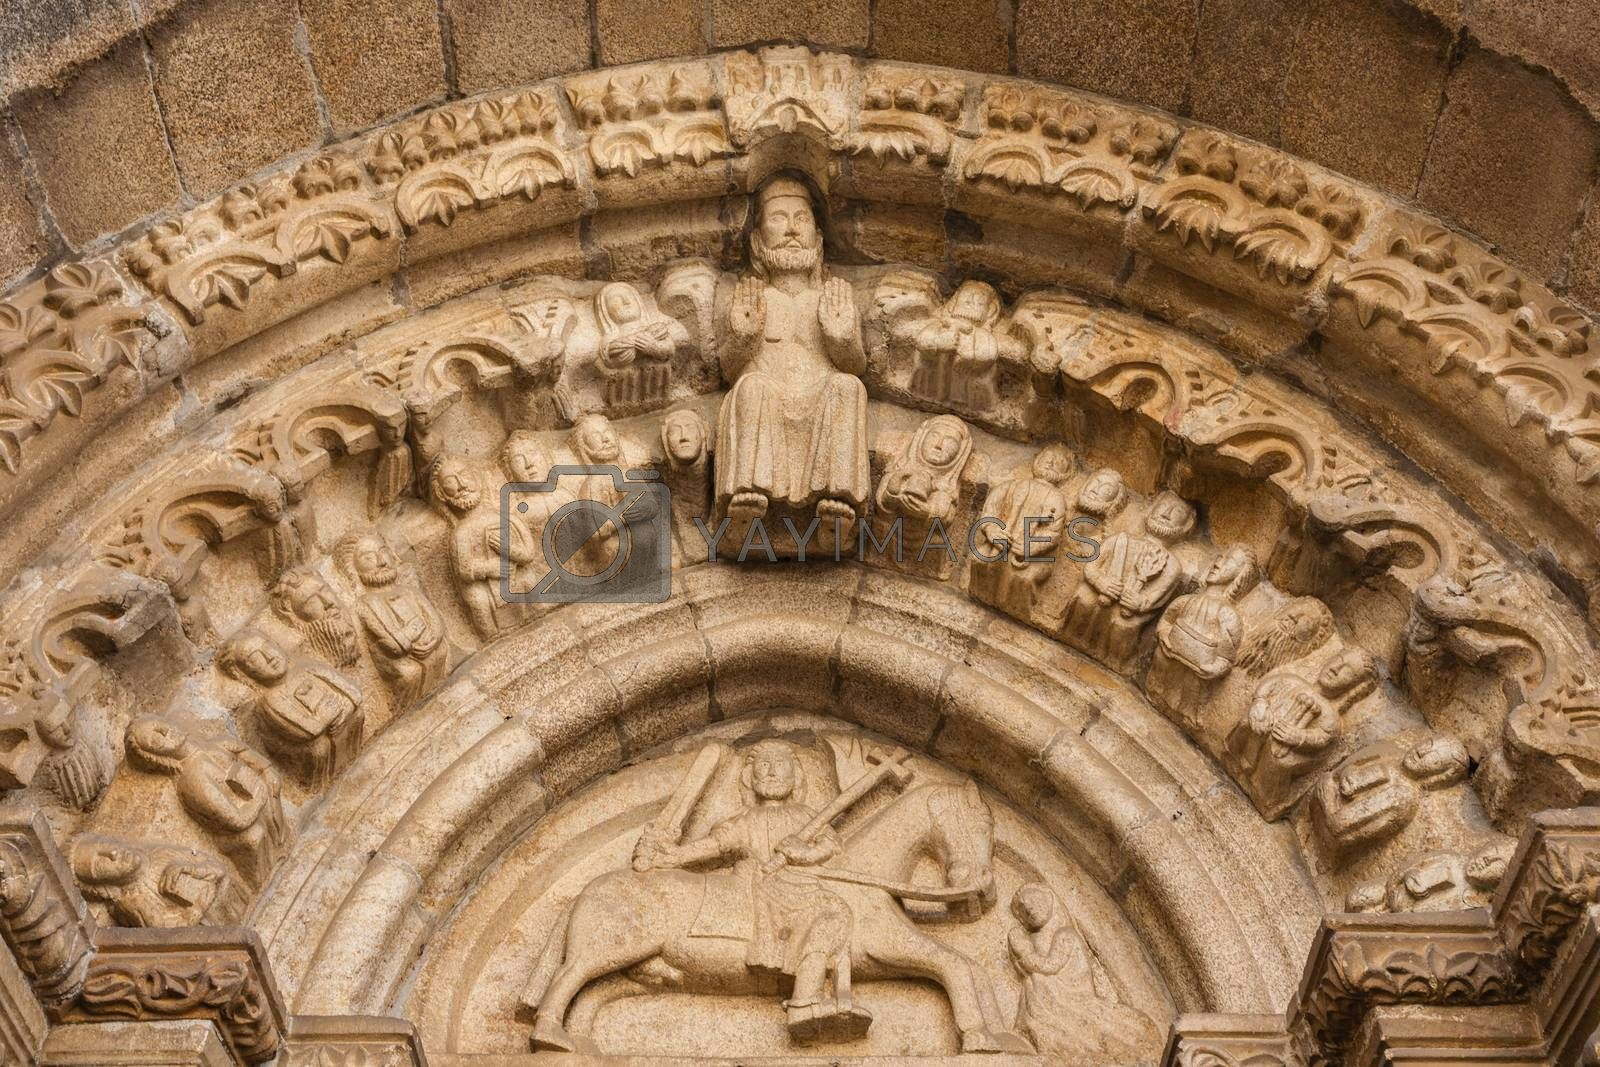 Detailed view of archivolts and tympanum in the  main entrance to Santiago church in Betanzos, La Coru��a, Spain